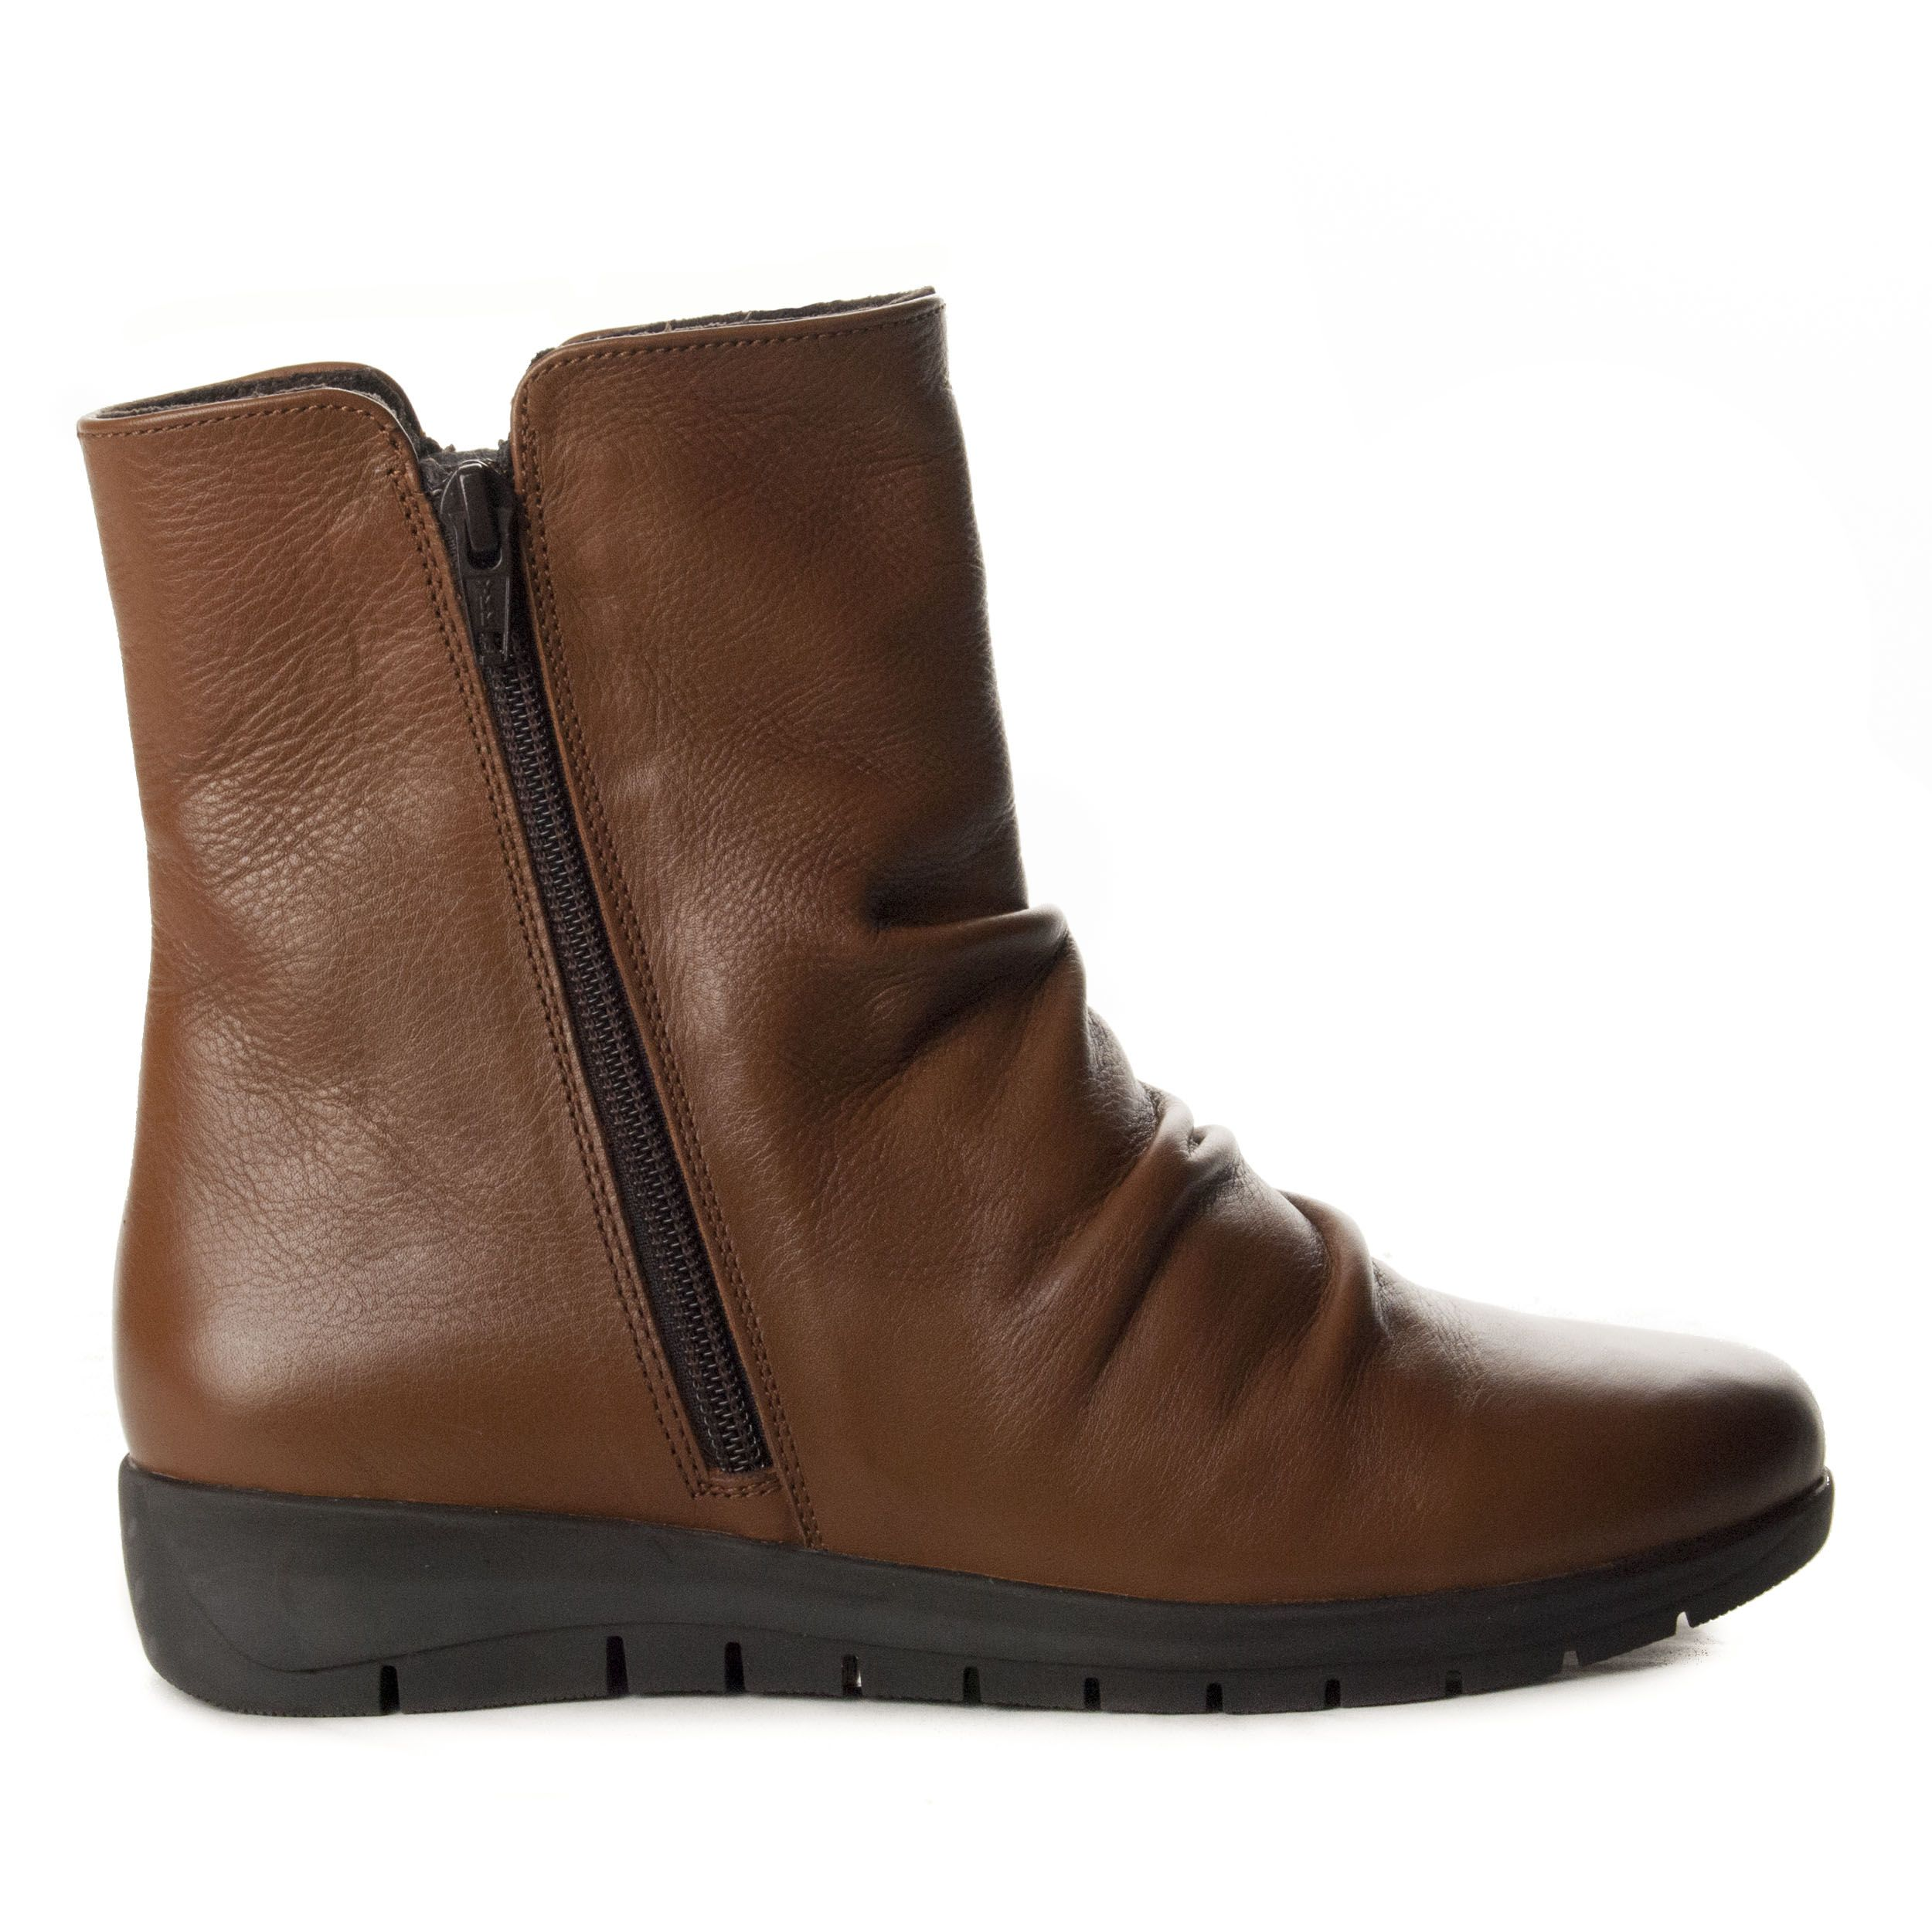 Purapiel Wedge Ankle Boot in Brown